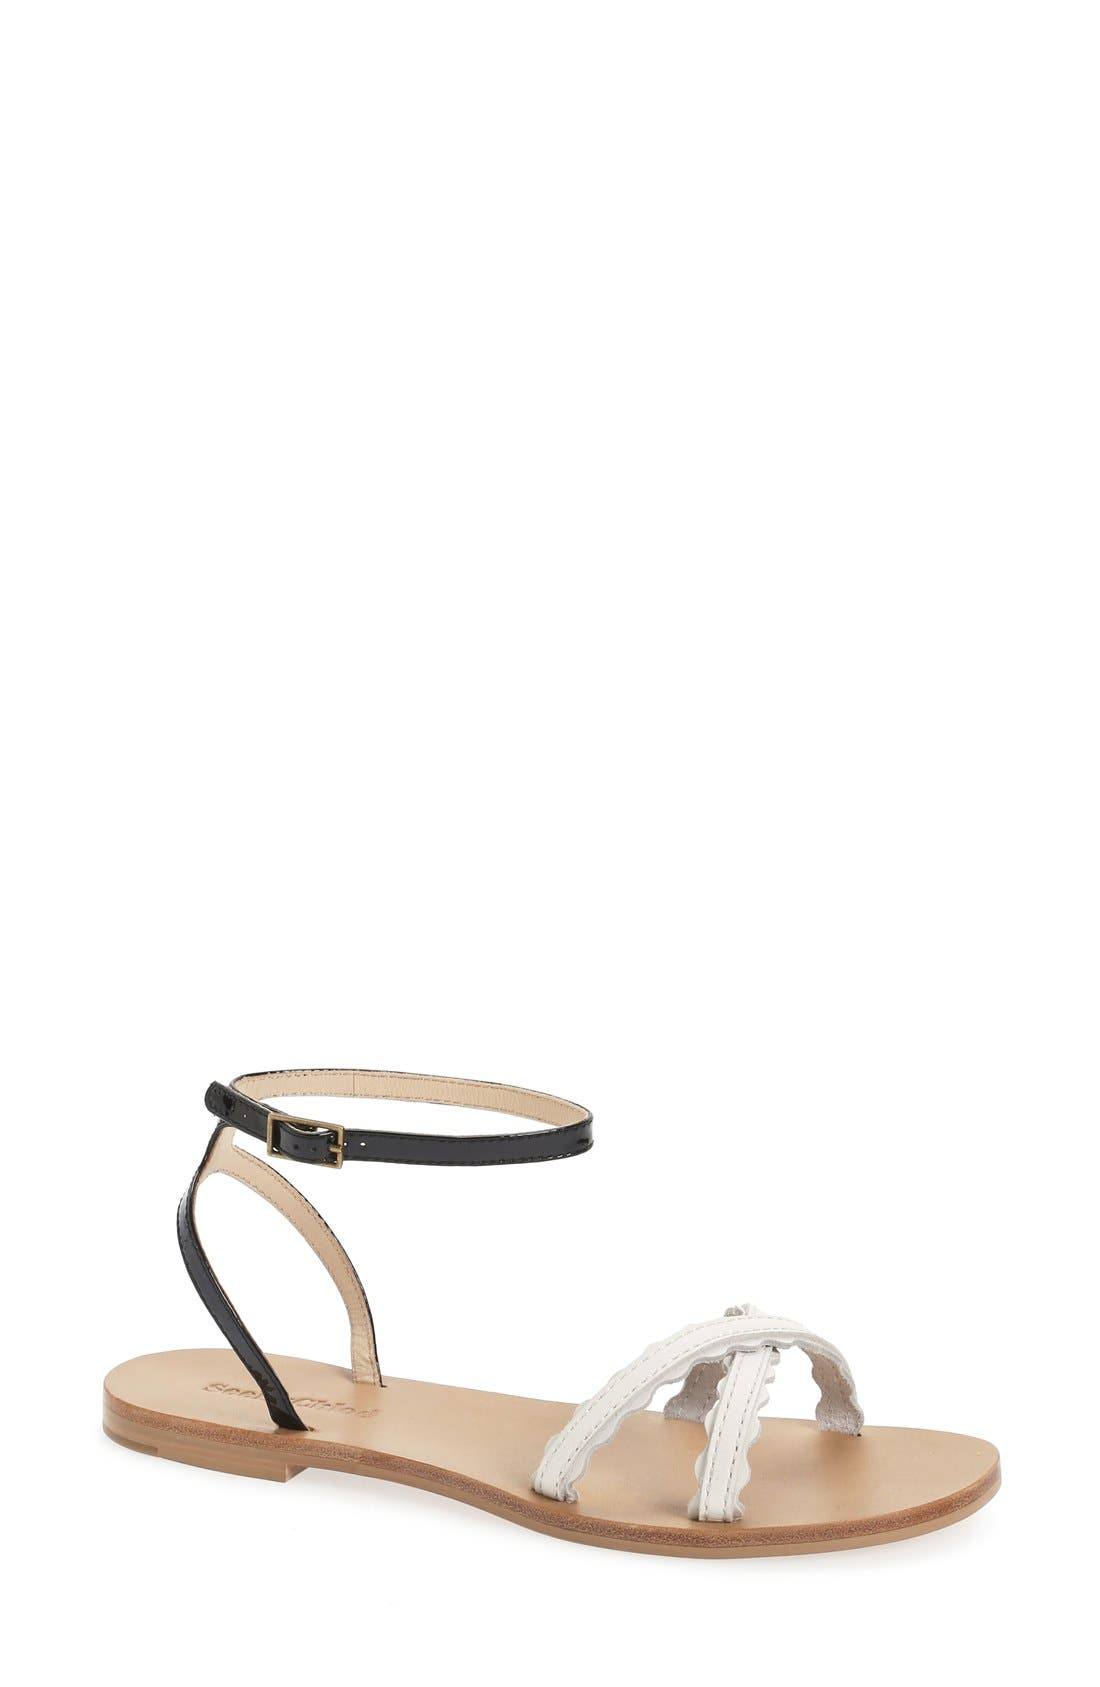 Main Image - See by Chloé Flat Sandal